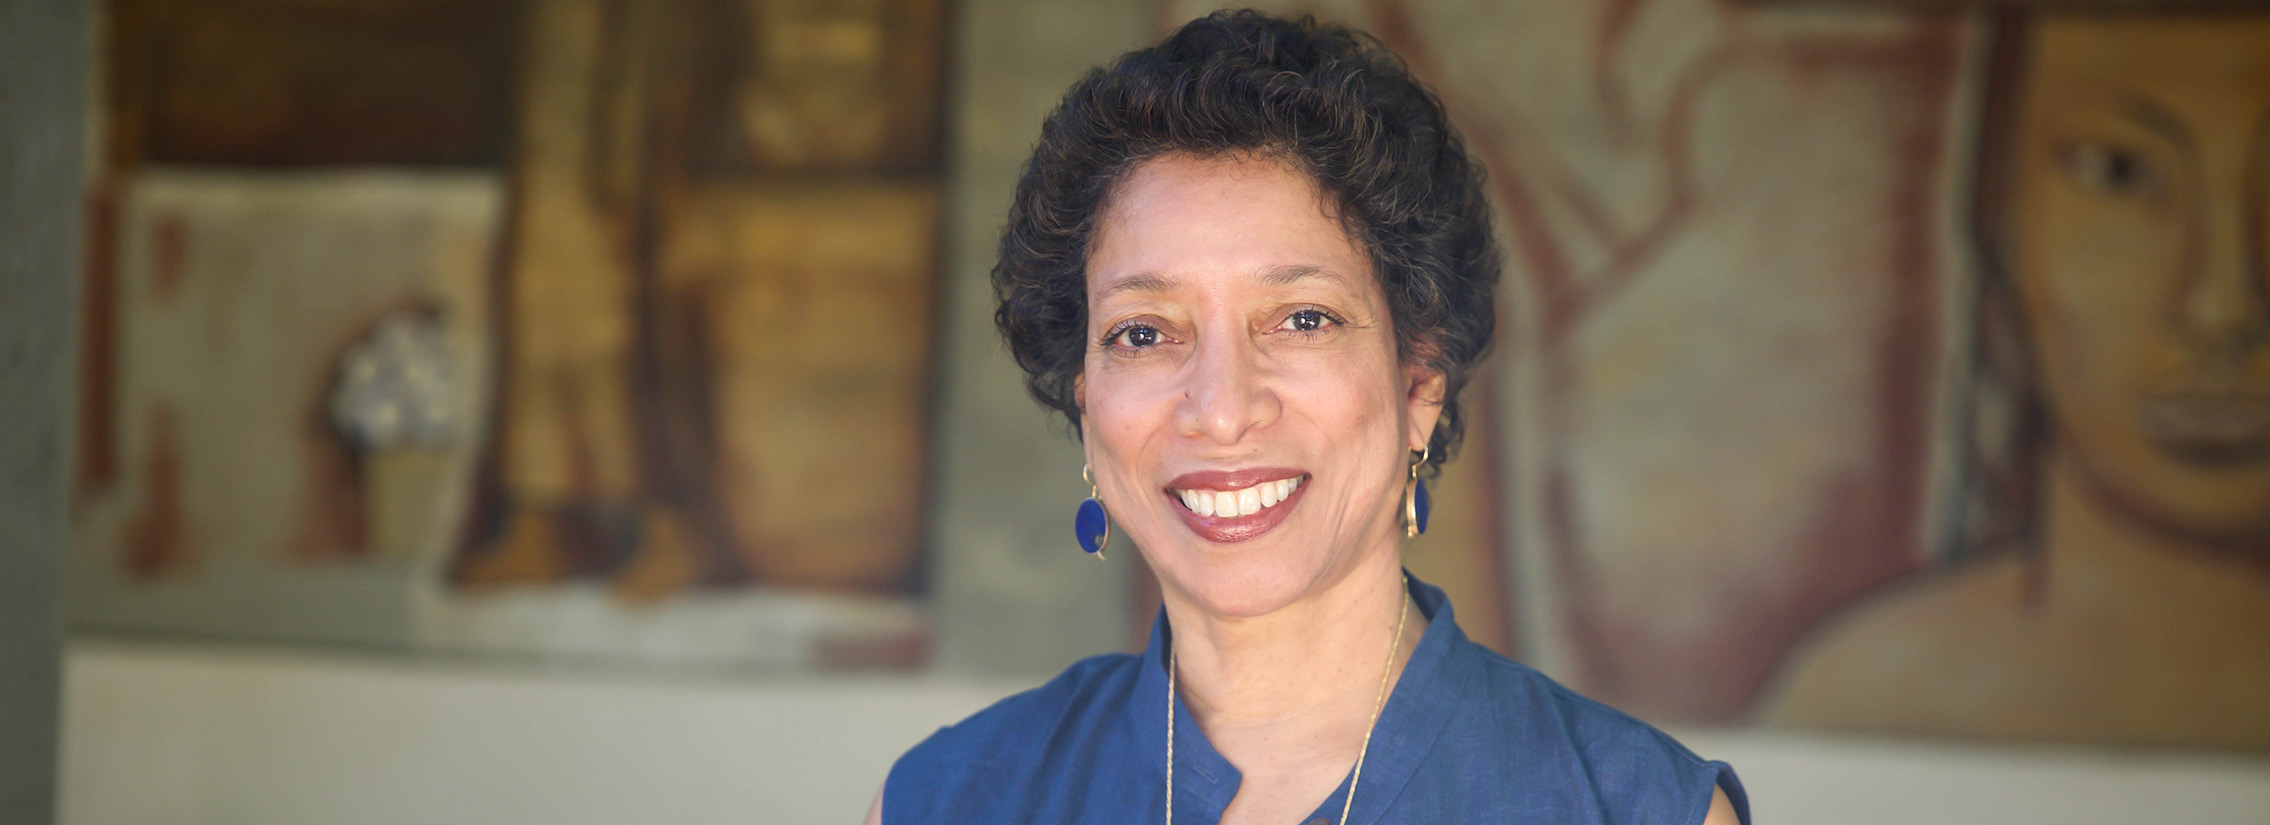 Lynne Thompson '72 Begins Term as Chair of the Board of Trustees